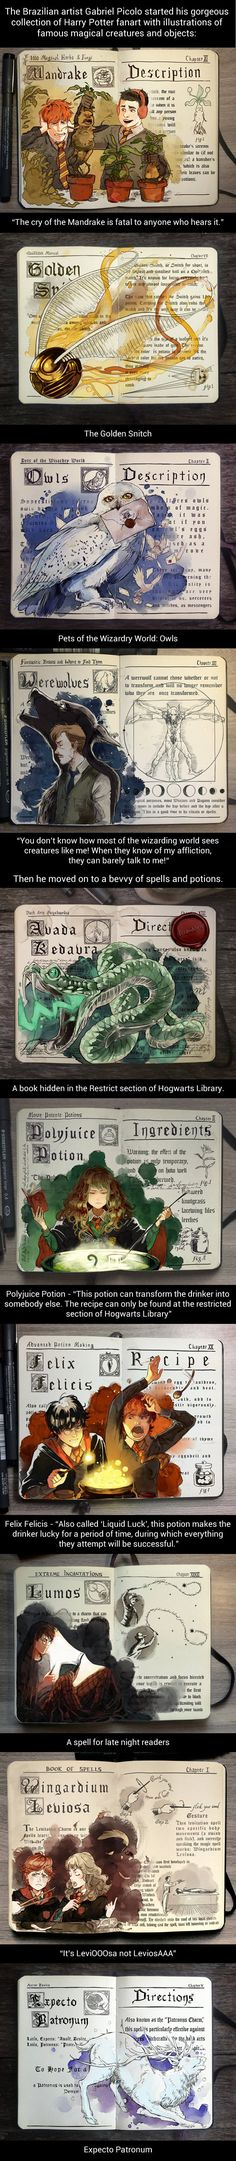 Les incroyables illustrations Harry Potter de Picolo